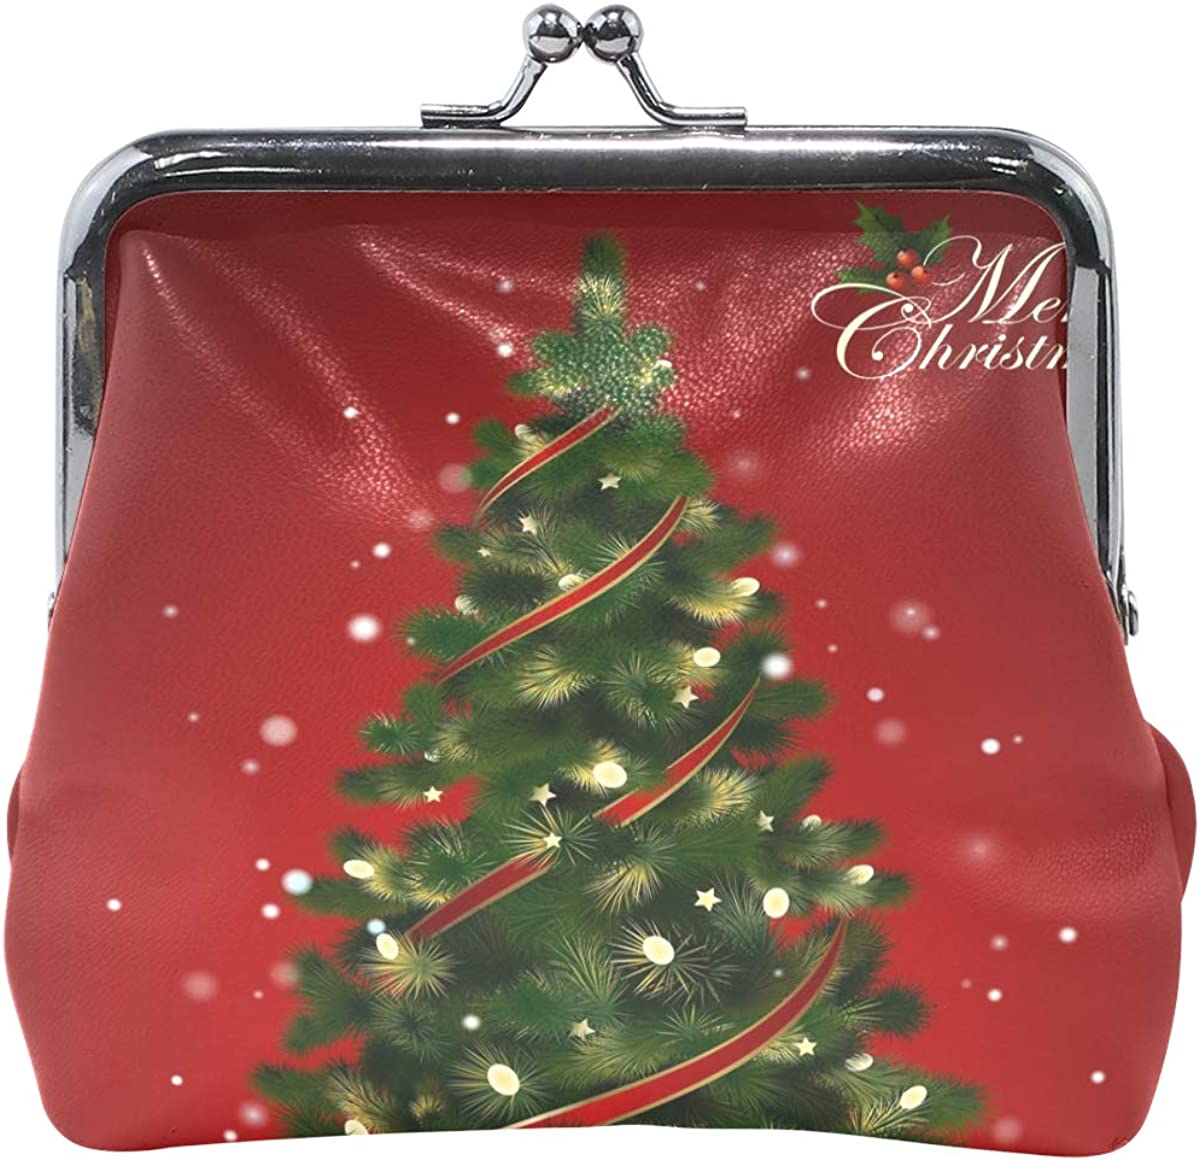 Women Wallet Purse Beautiful Christmas Tree Clutch Bag Leather